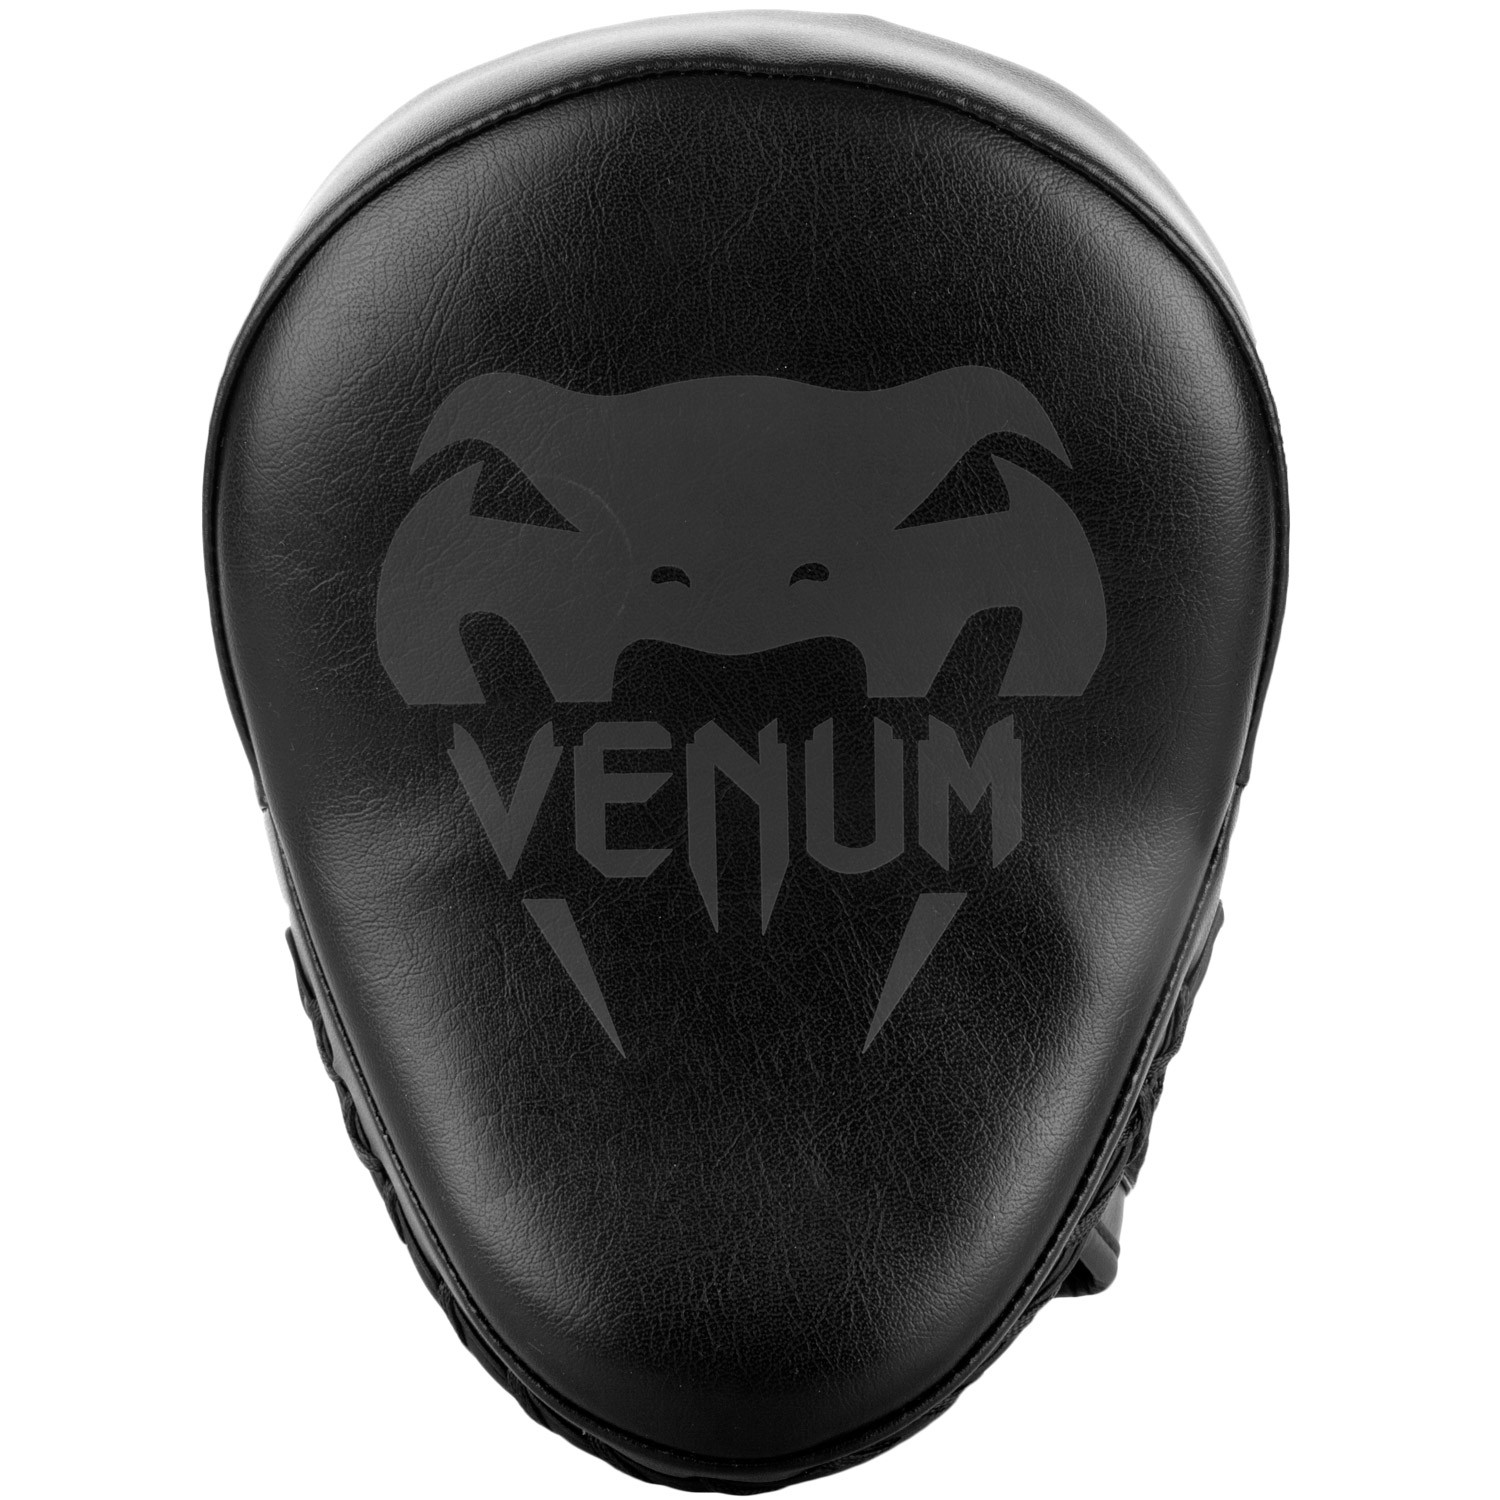 Лапы Venum Light Black/Black (пара)<br>Вес кг: 1000.00000000;